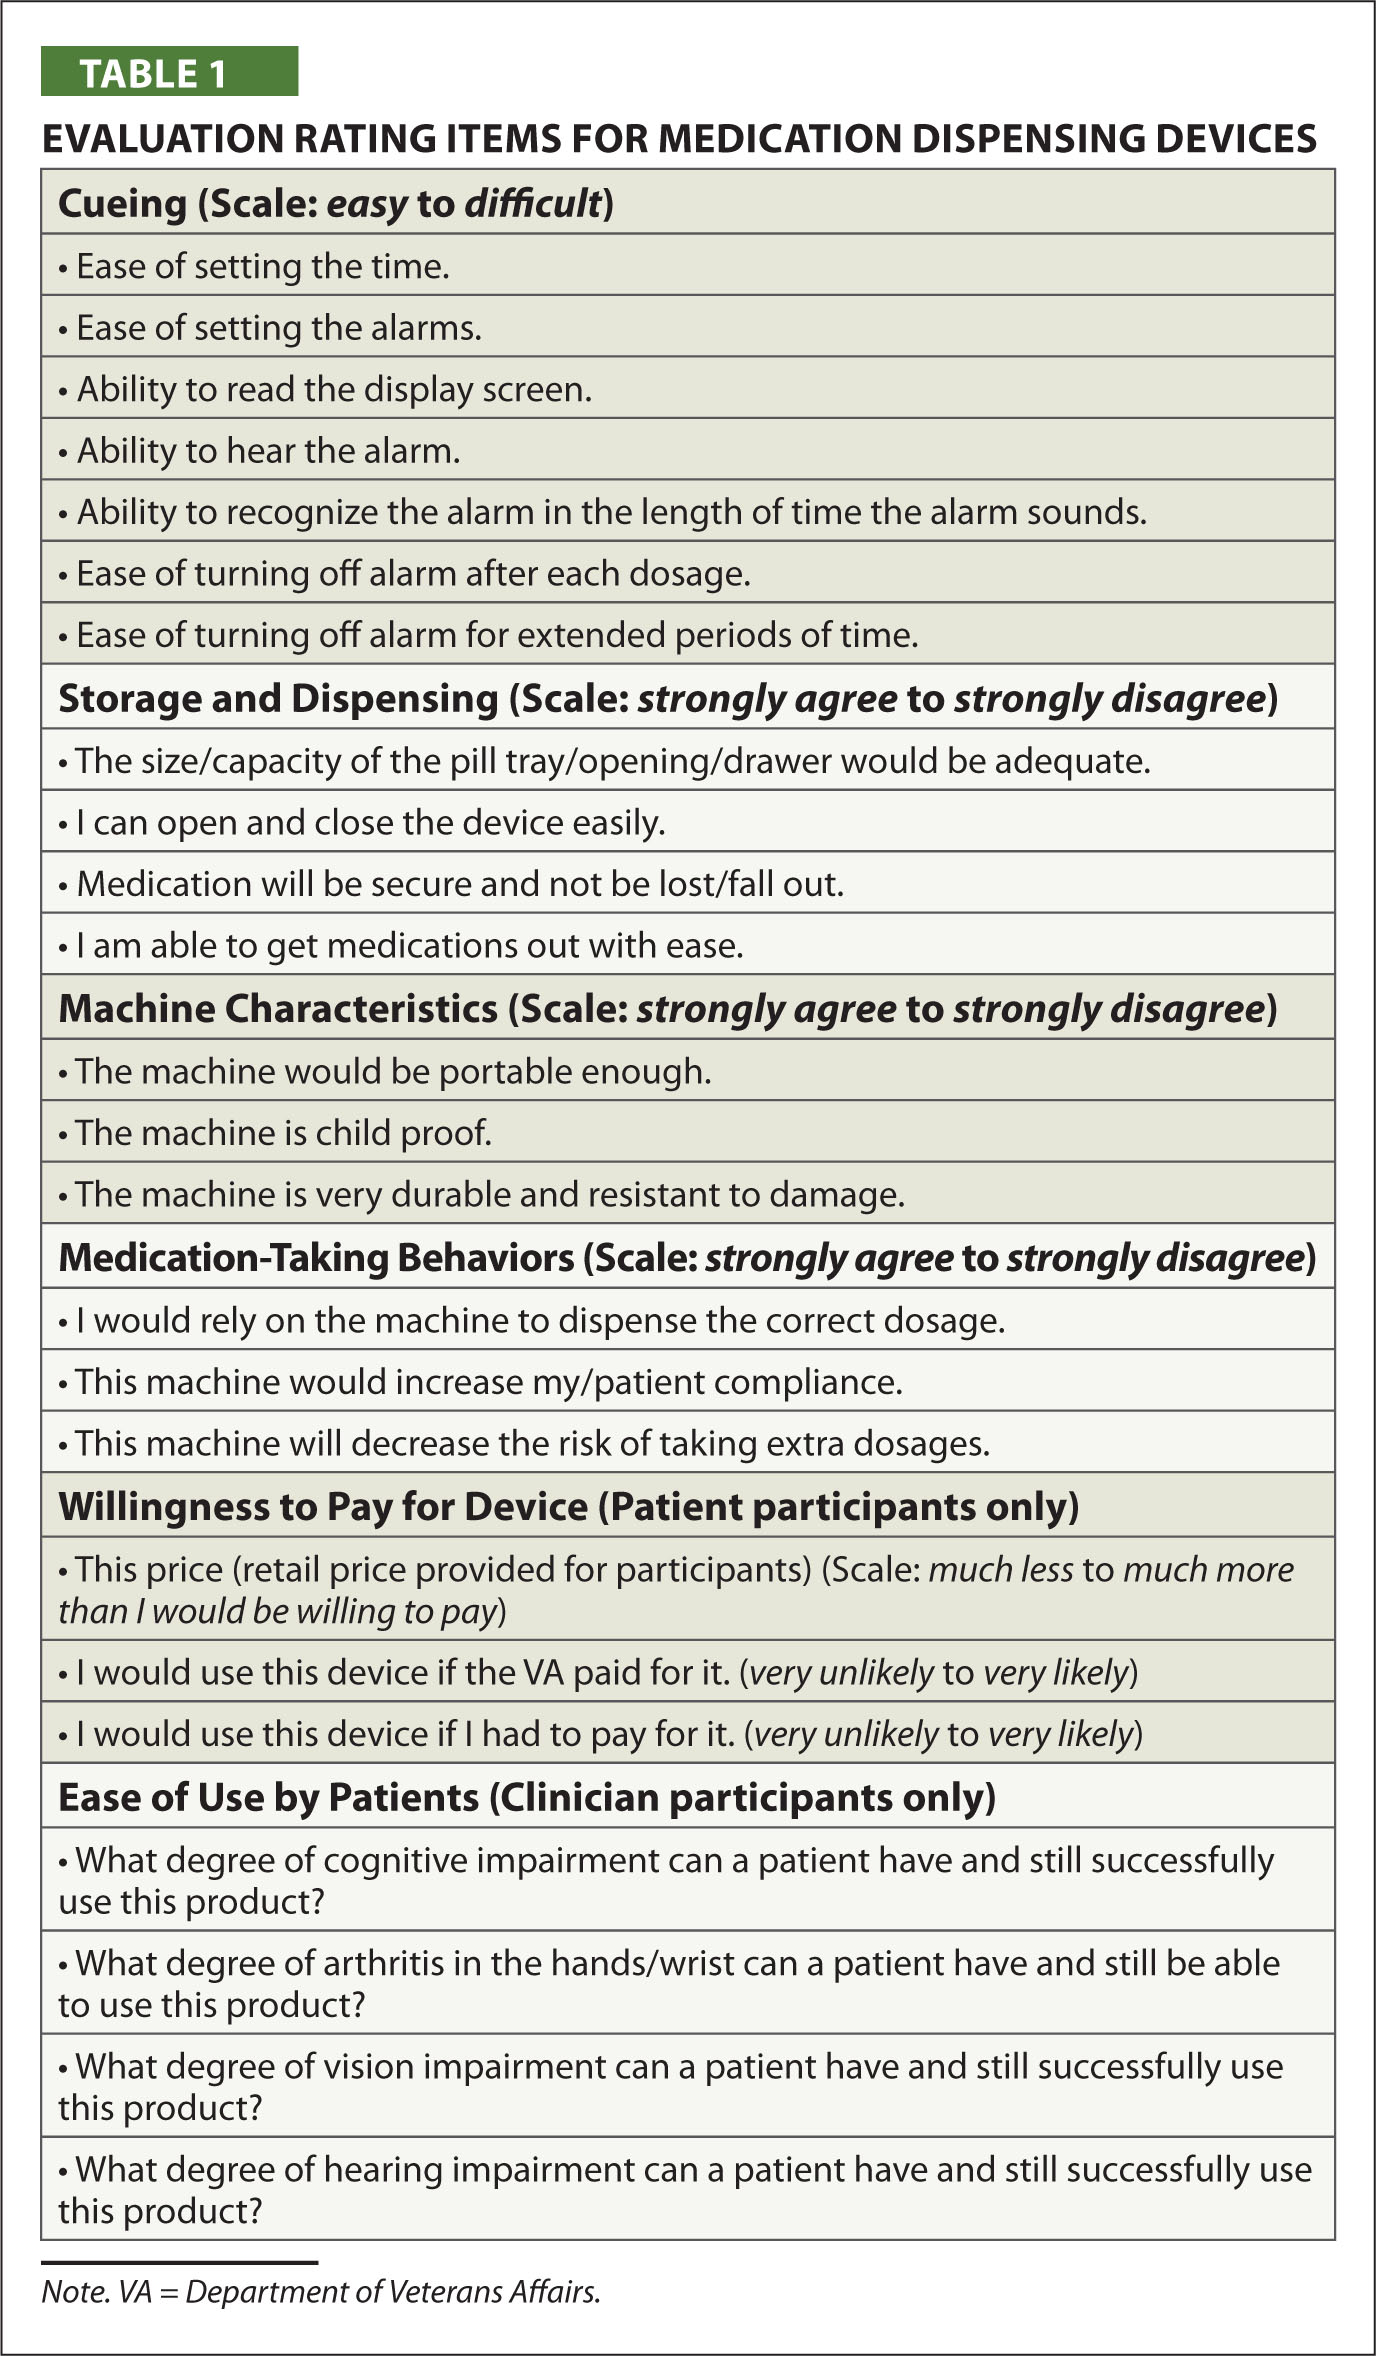 Evaluation Rating Items for Medication Dispensing Devices